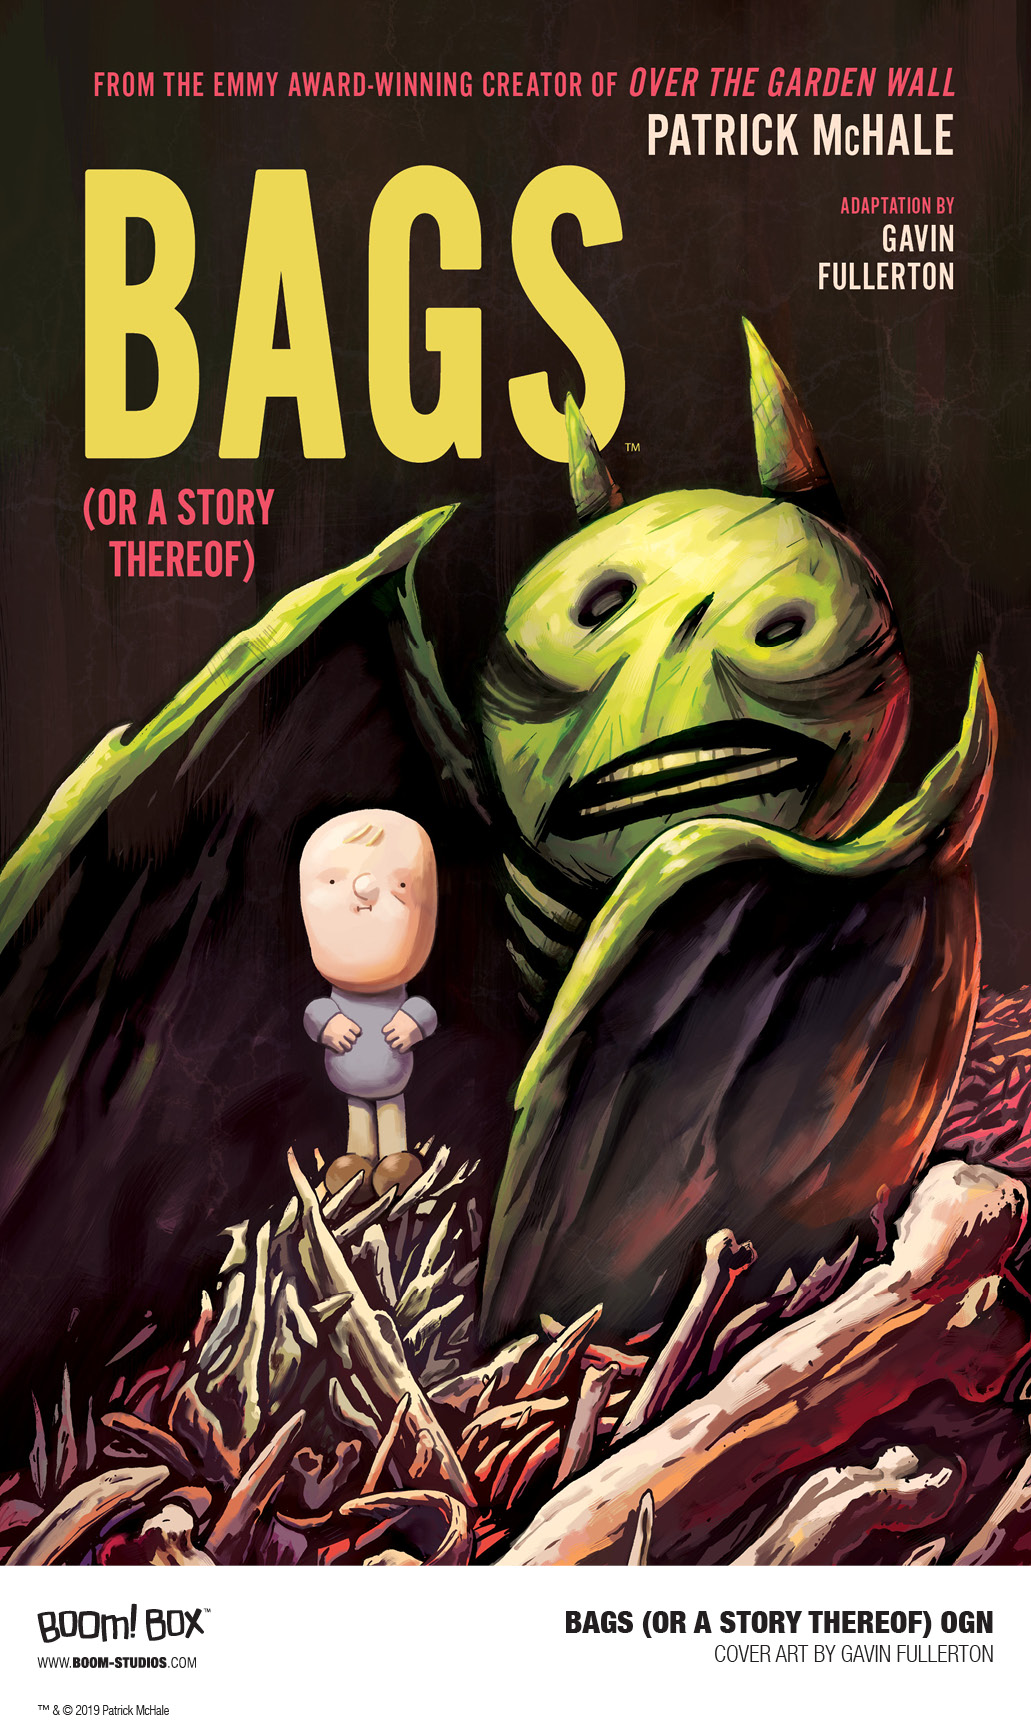 Bags (Or A Story Thereof) is my first graphic novel from Boom! Studios. Adapted from the short story of the same name by Patrick McHale (Over the Garden Wall). It's about a man called John Motts, who goes in search of his missing dog. Out July 17th!